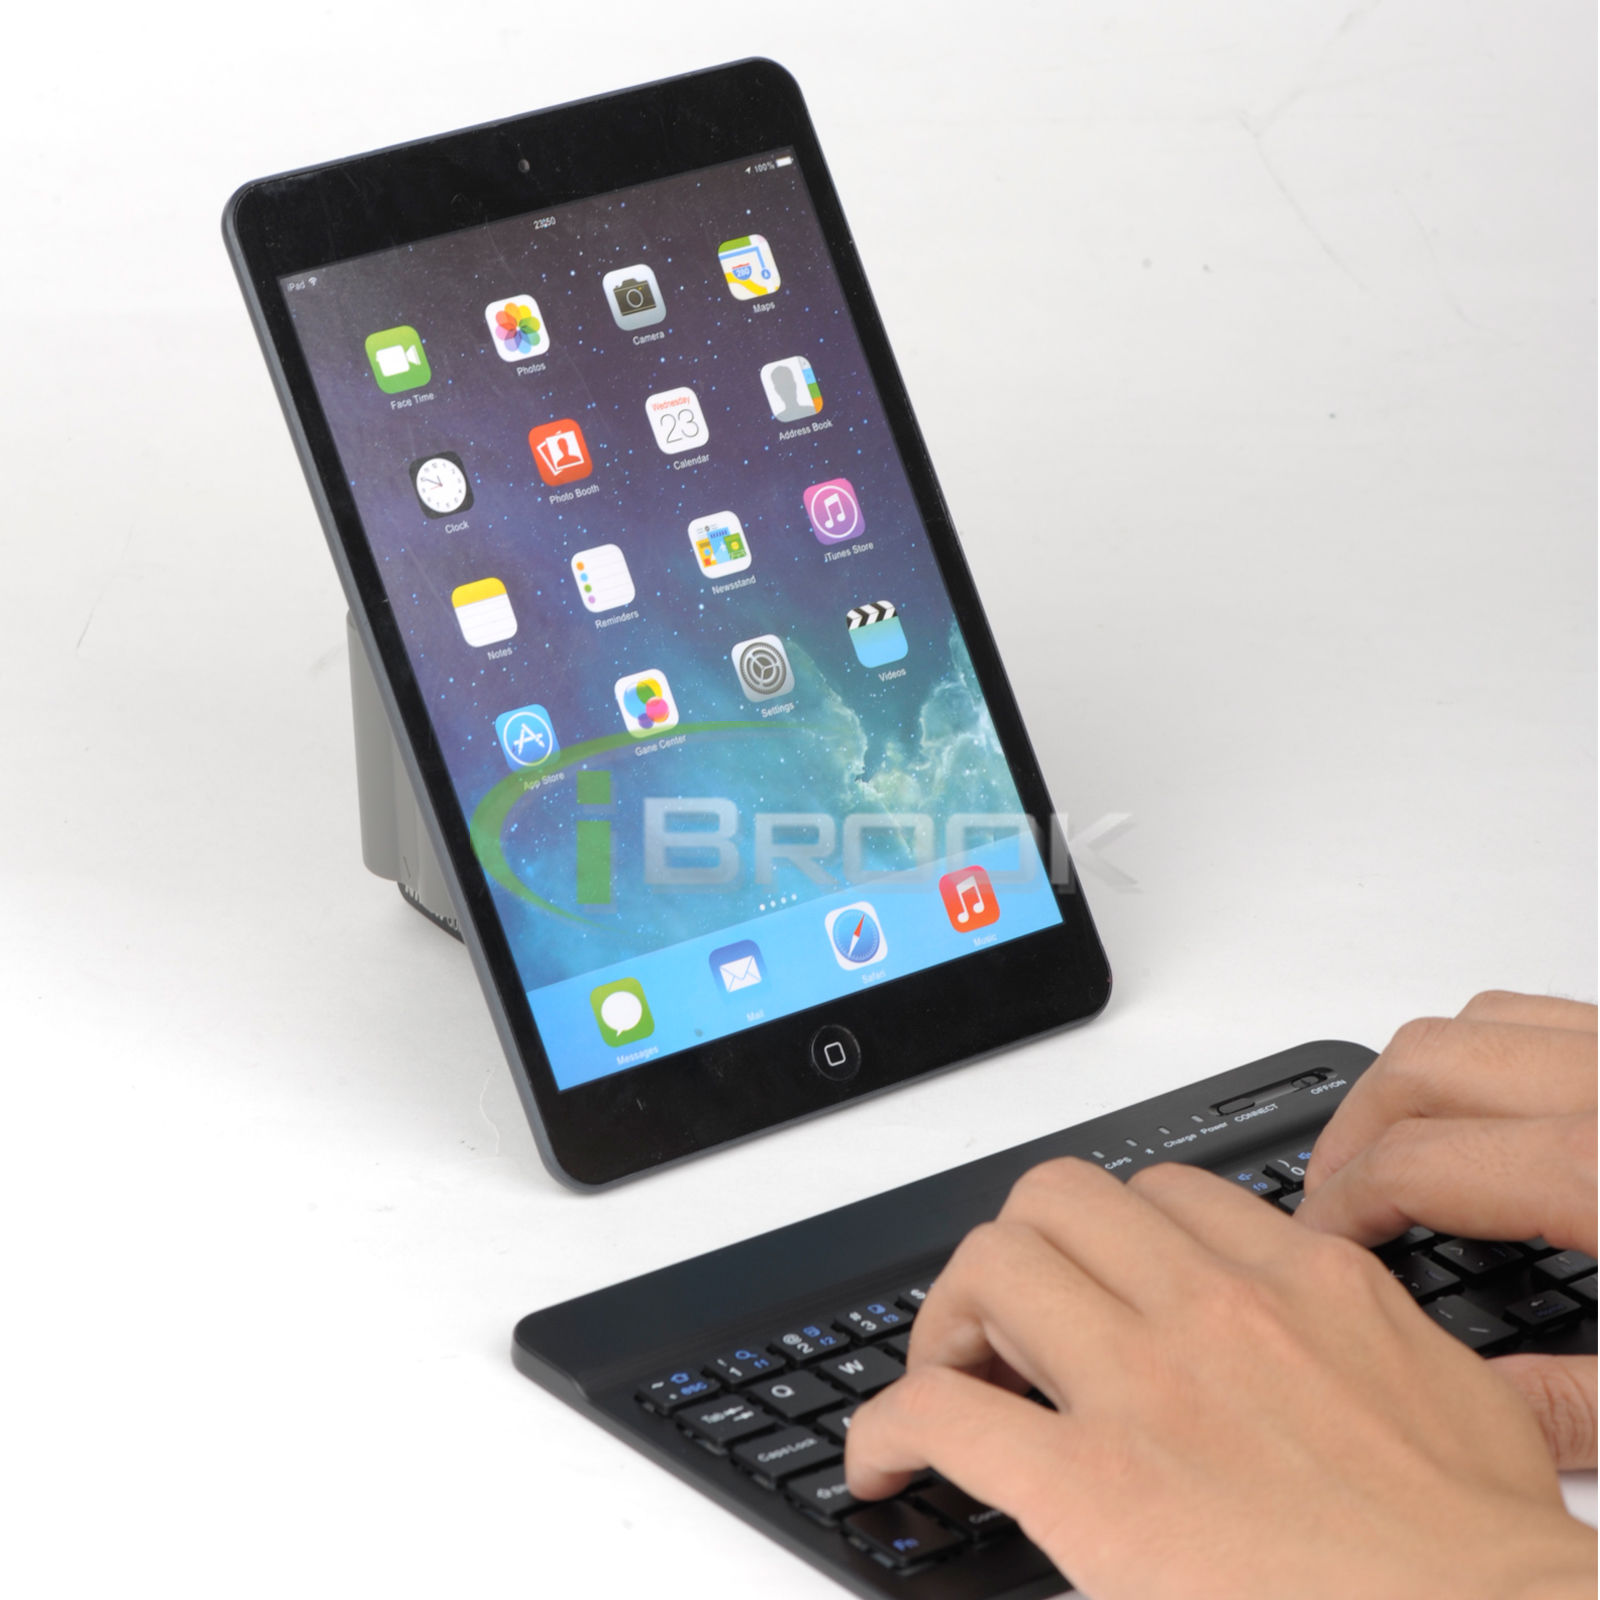 Wireless-Bluetooth-Keyboard-For-IOS-Android-Windows-7-034-8-034-7-9-034-Tablet-New